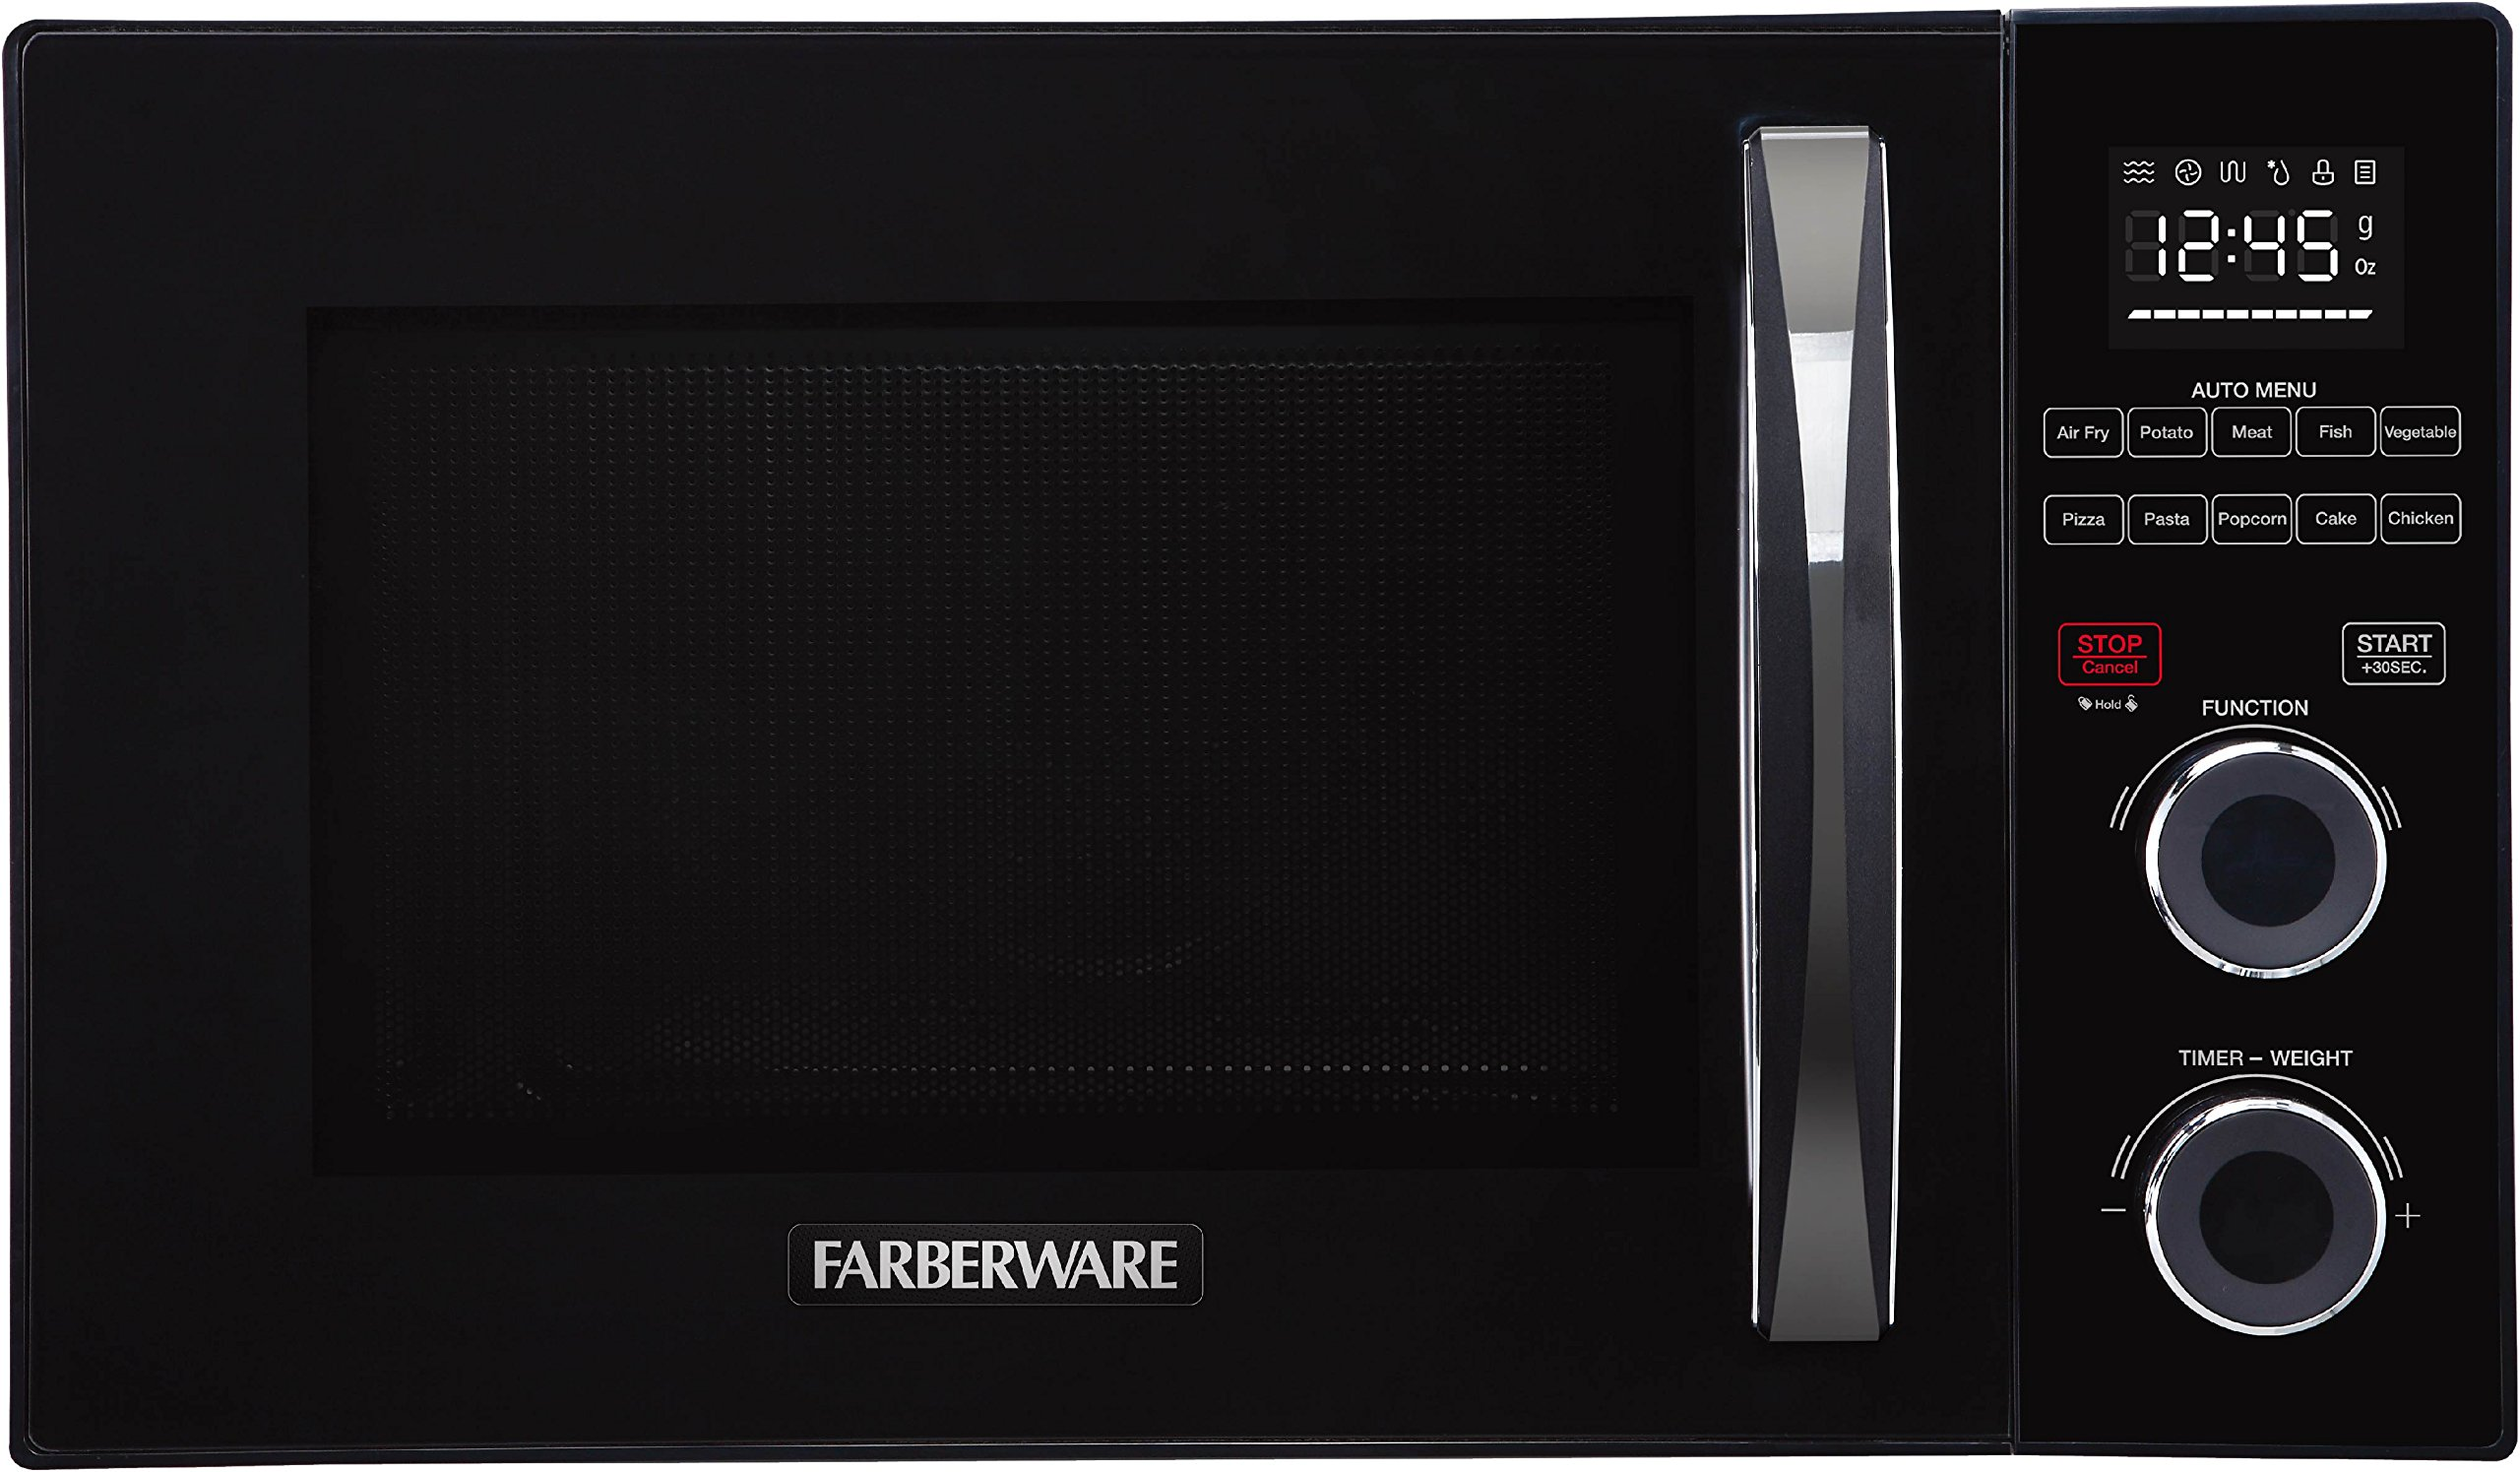 Farberware Gourmet FMO10AHSBKA 1.0 Cubic Foot 1000 Watt Microwave Oven with Healthy Air Fry and Grill/Convection Function